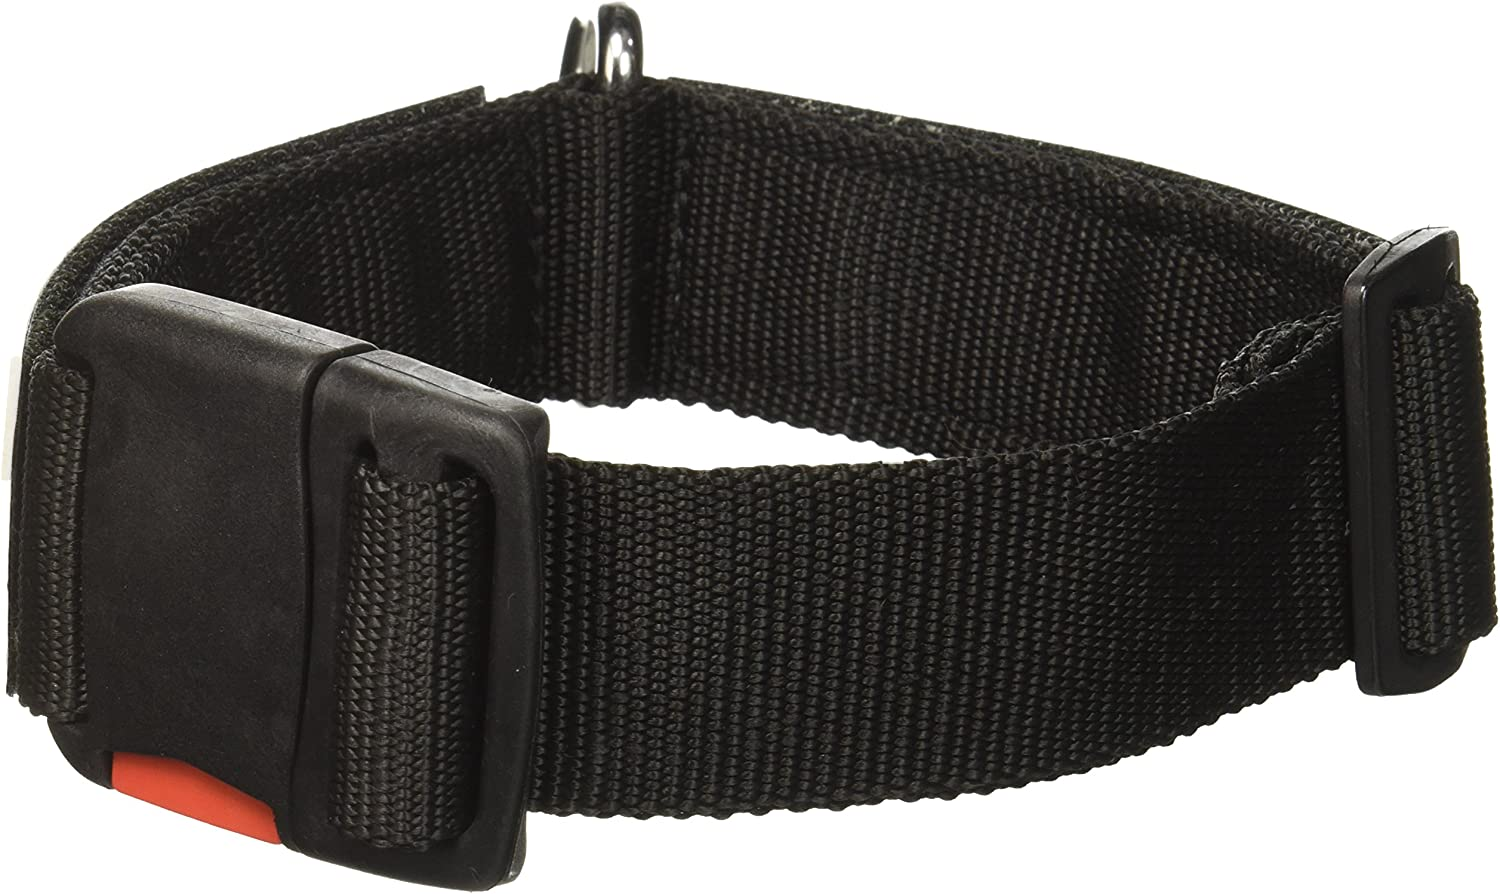 Dean and Tyler Patch Collar, Nylon Dog Collar with Working Dog DO NOT PET Patches  Black  Size  Small  Fits Neck 18Inch to 21Inch